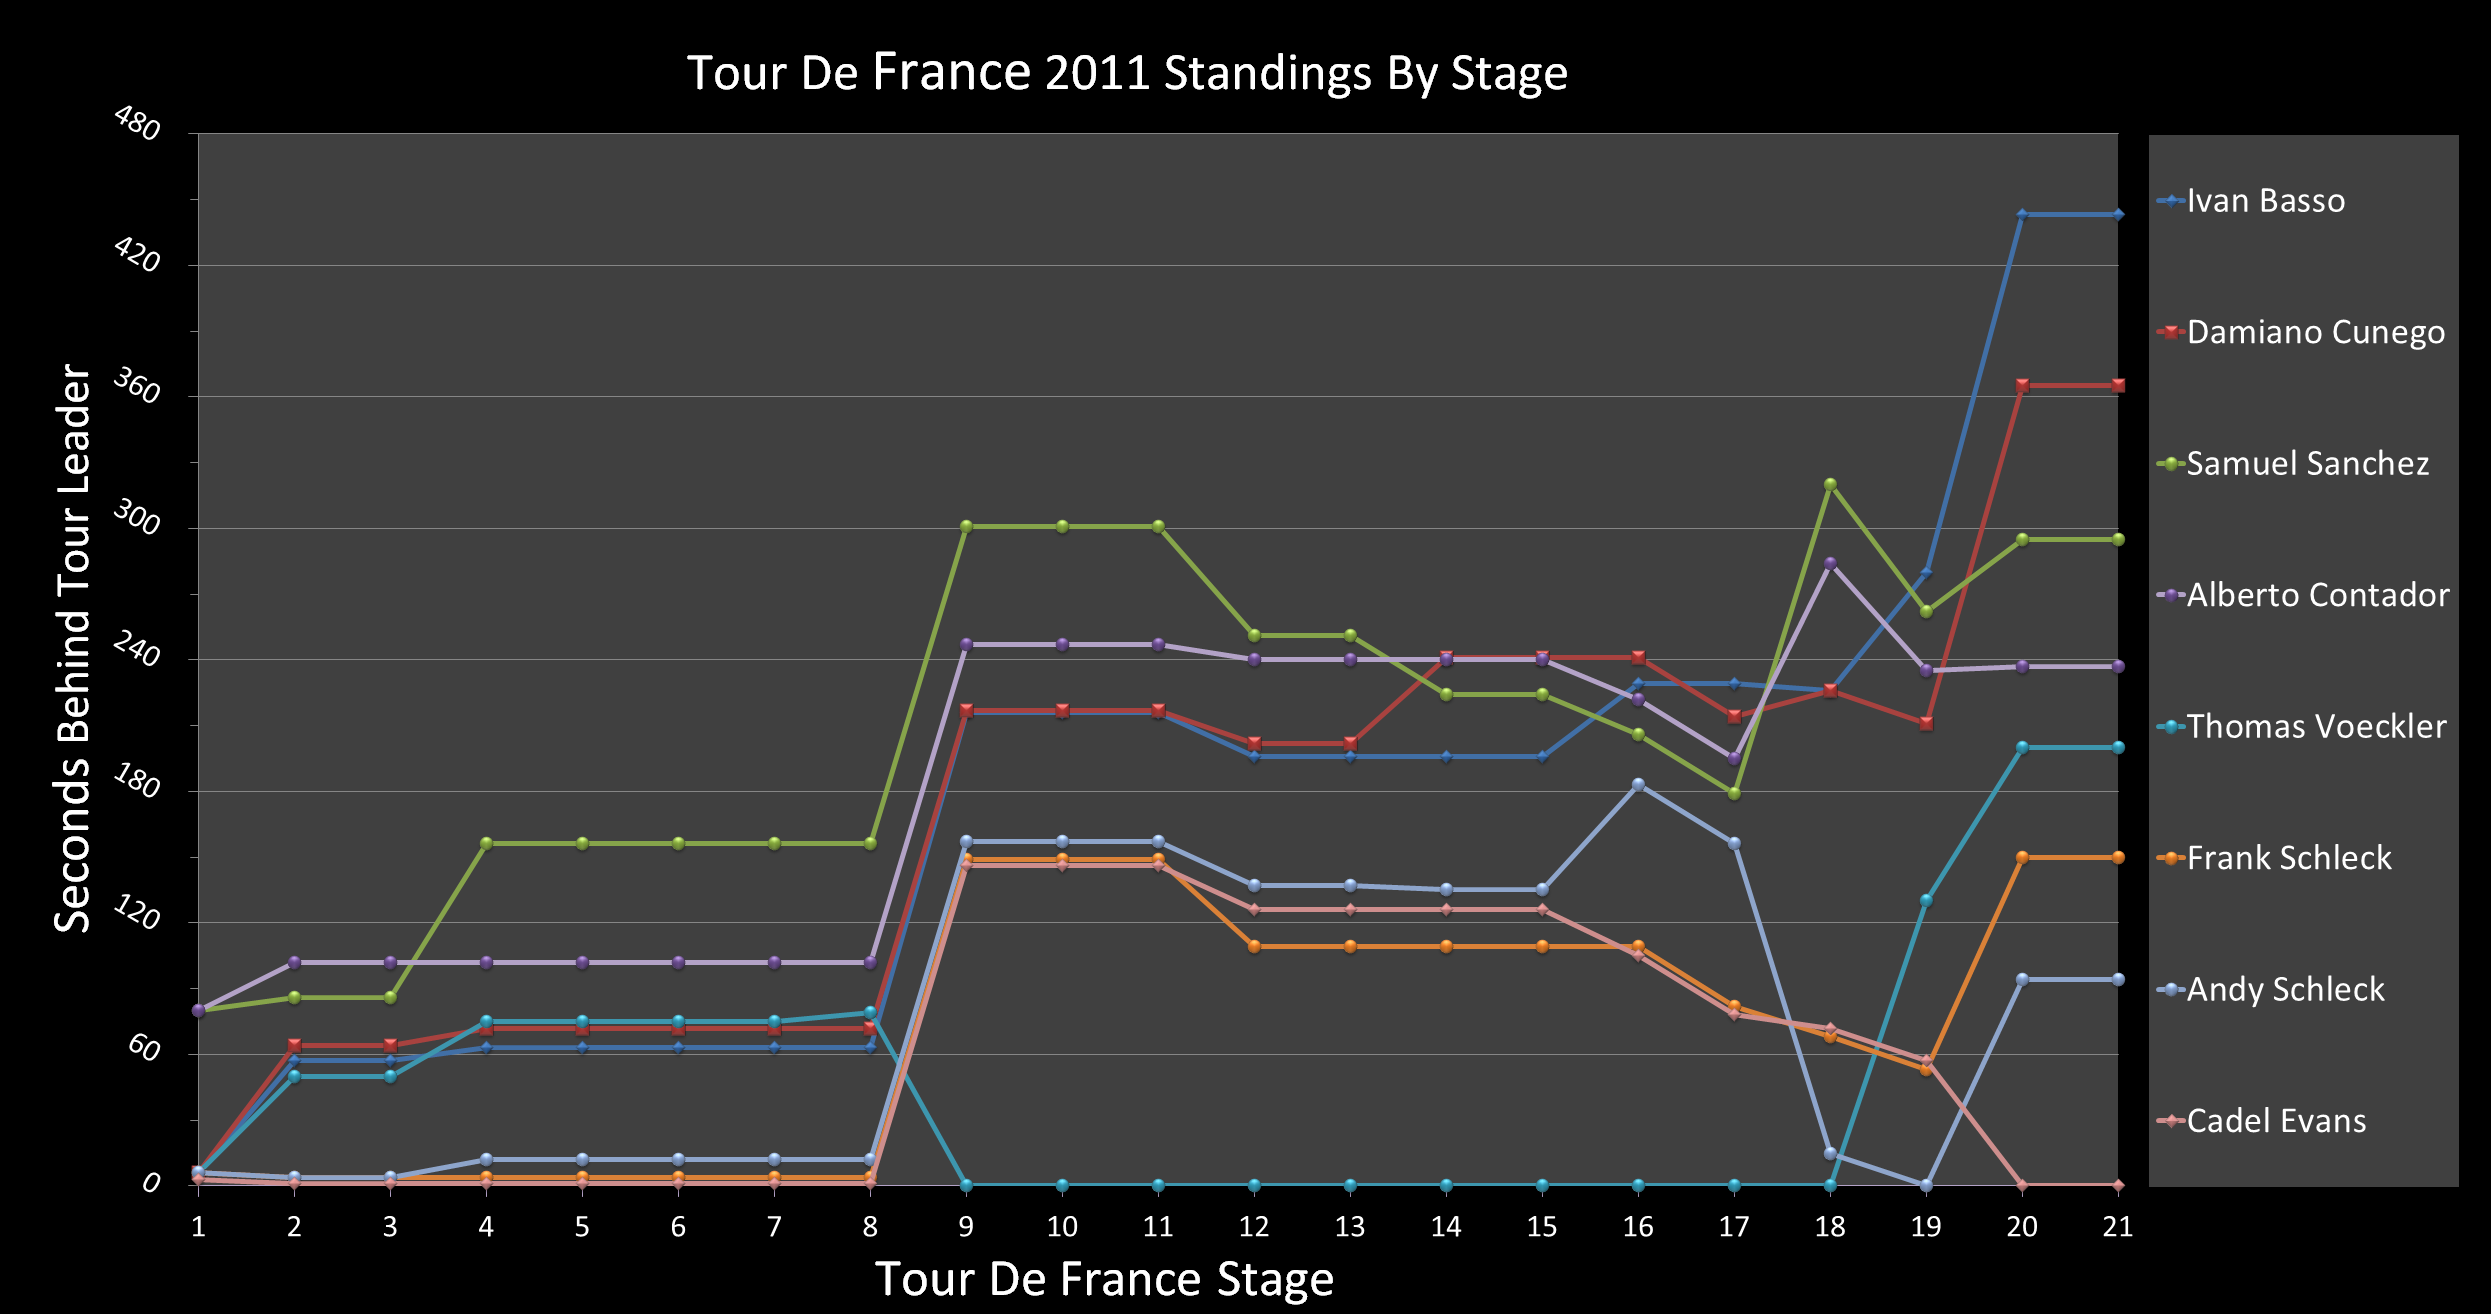 Tour de France 2011 GC positions